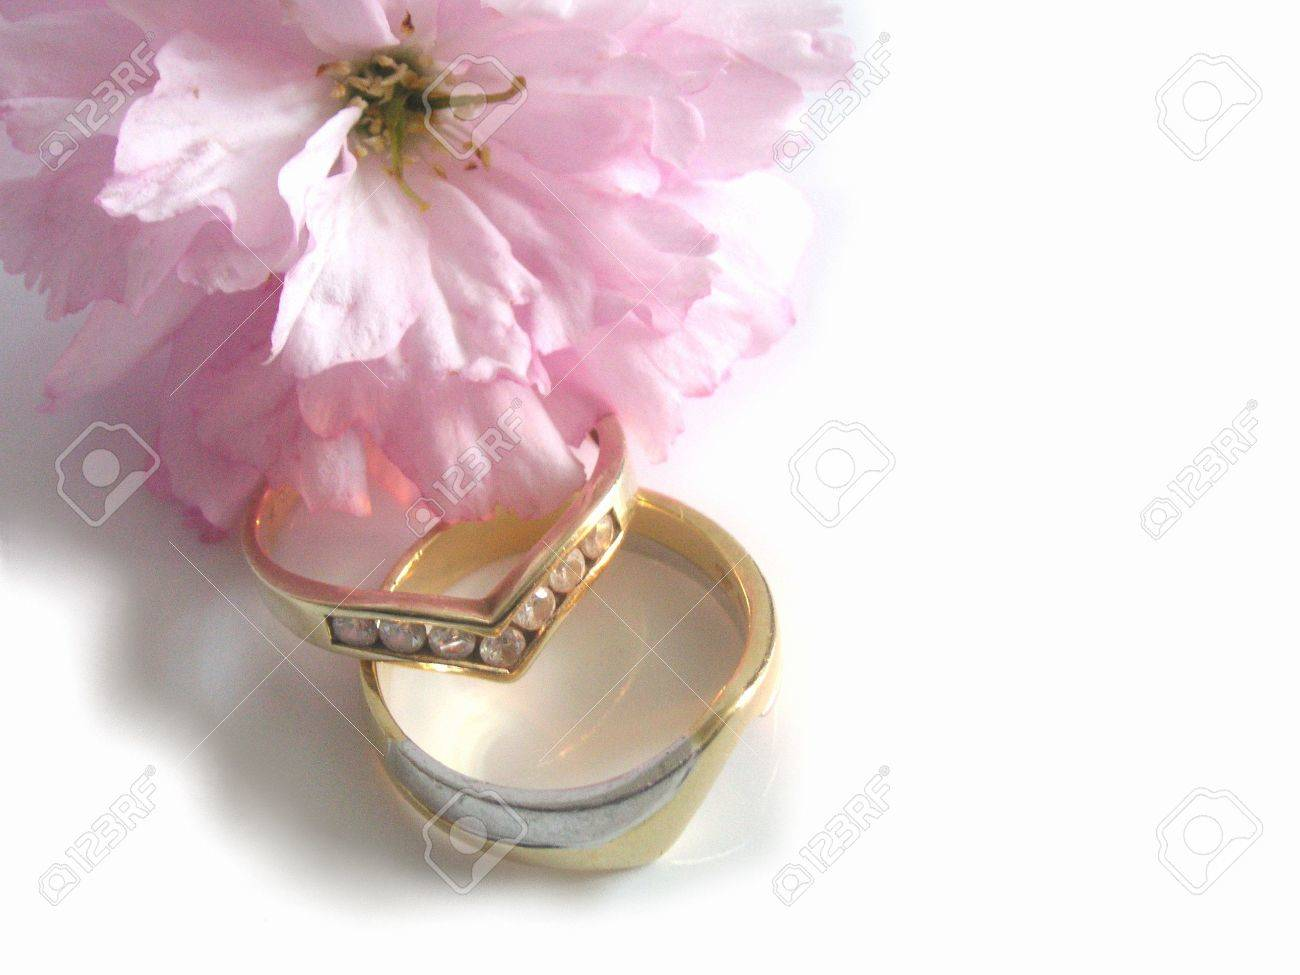 Single Cherry Blossom And Wedding Rings Stock Photo, Picture And ...